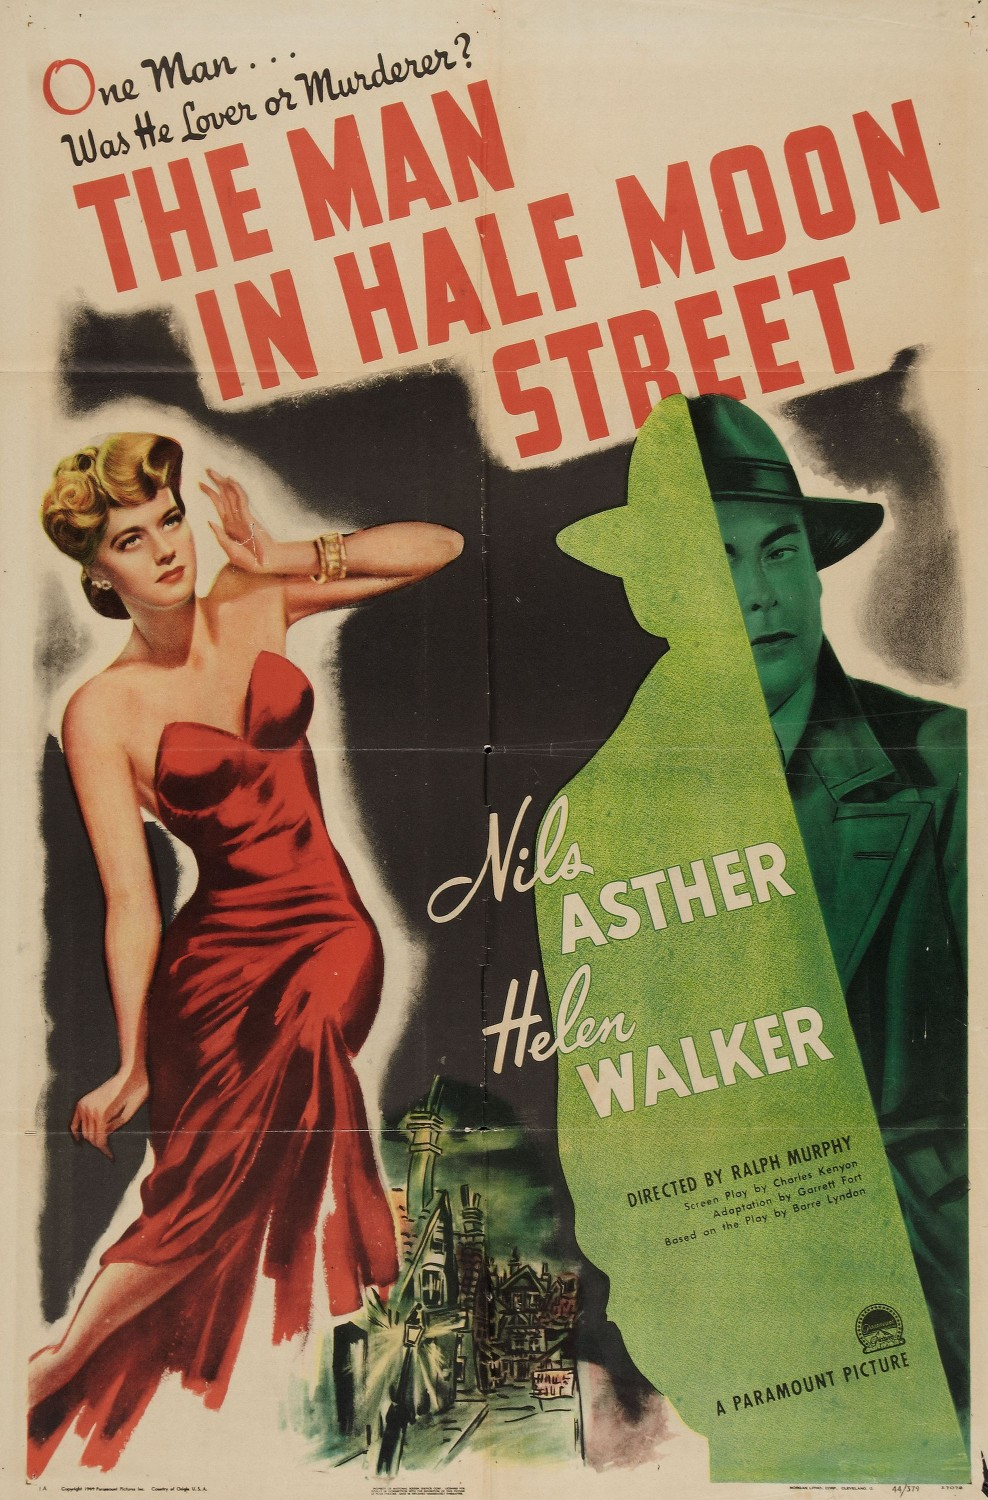 The Man in Half Moon Street (1944)